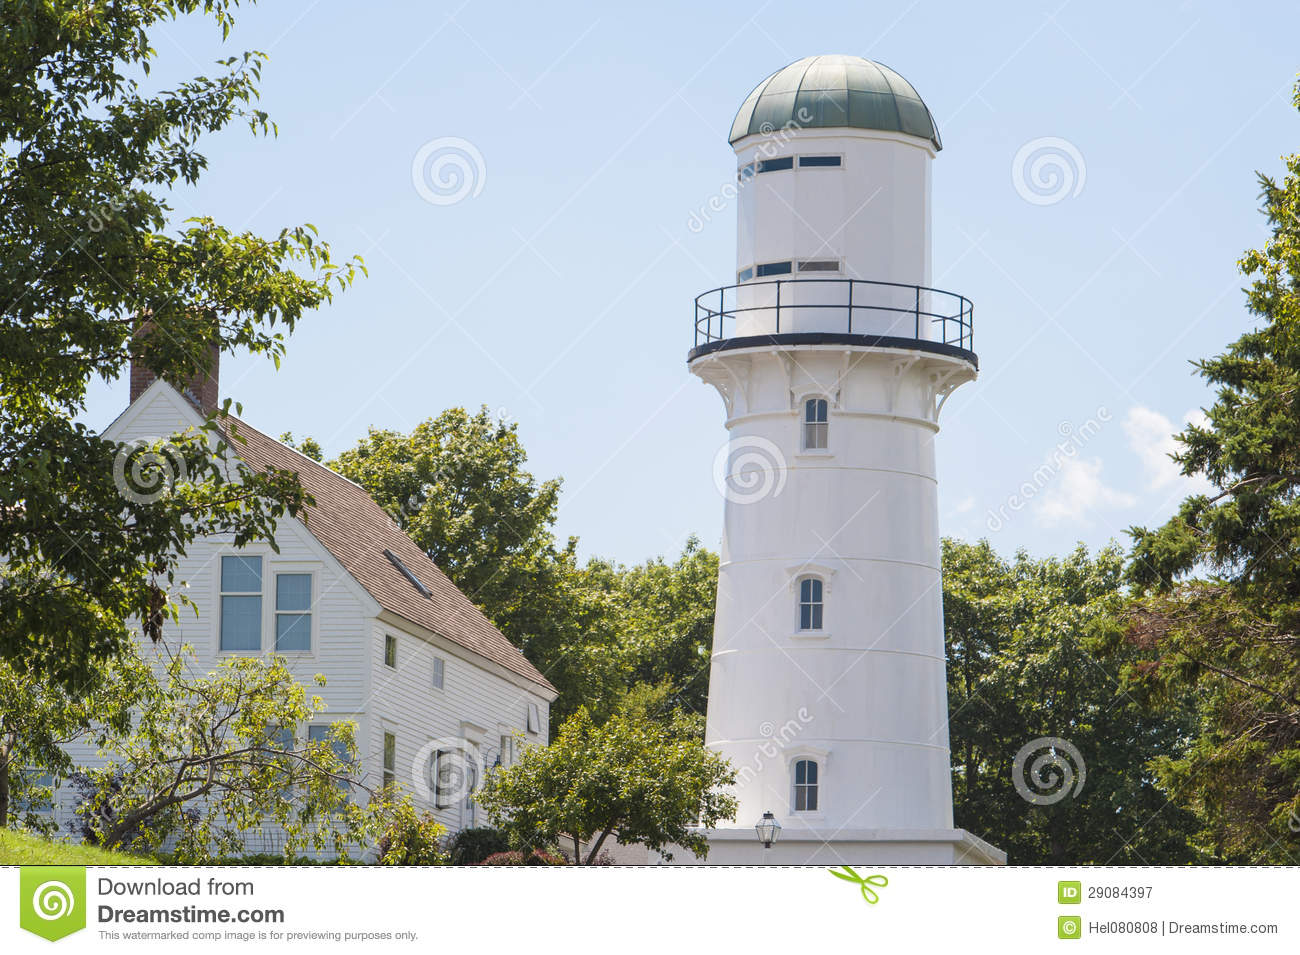 Lighthouse in maine royalty free stock photography image for What time is it in maine right now